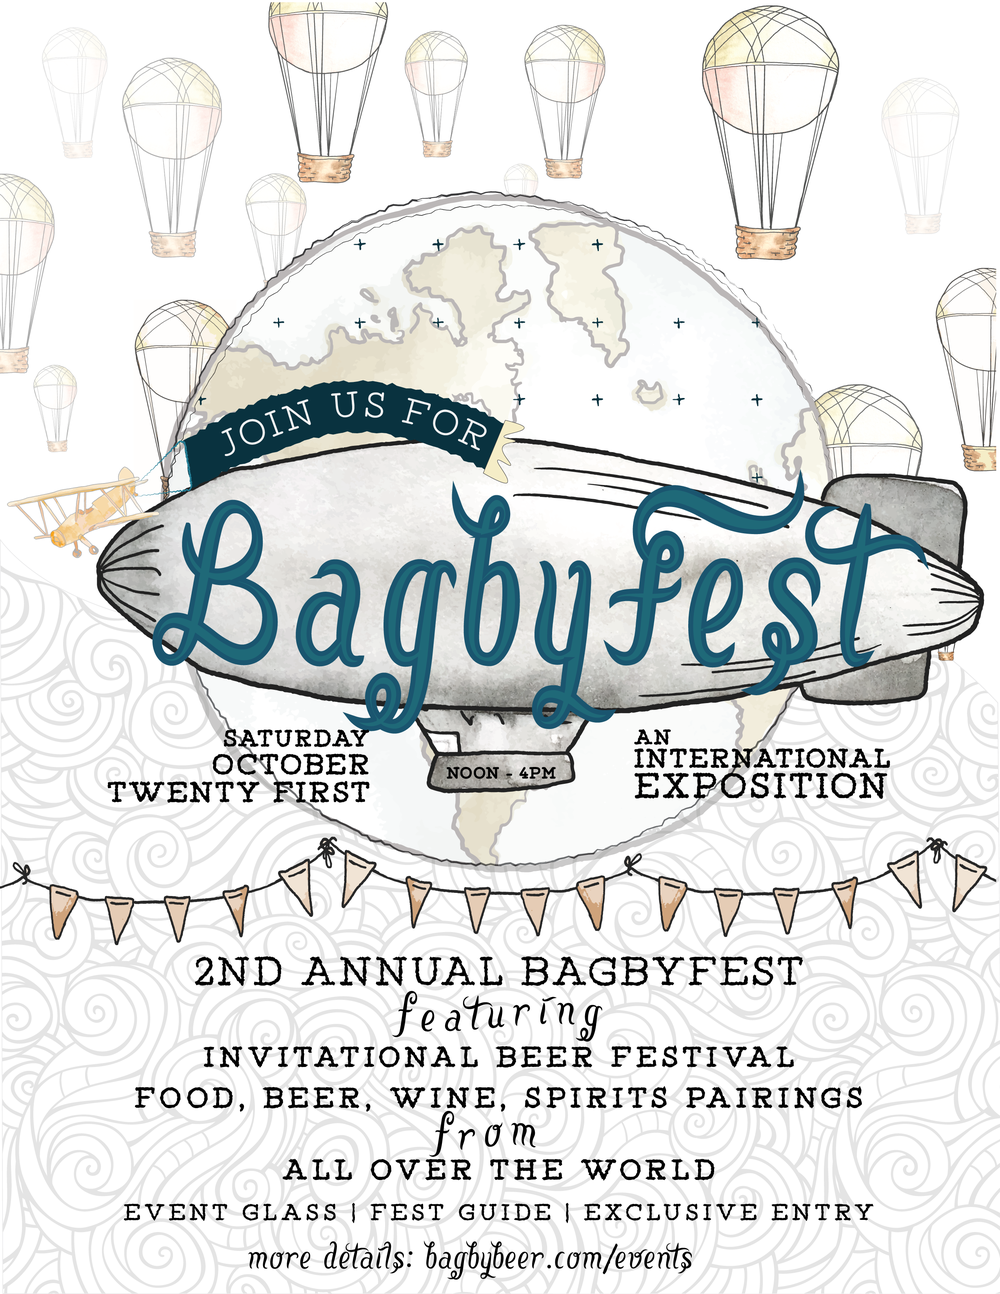 bagbyfest trial-01.png